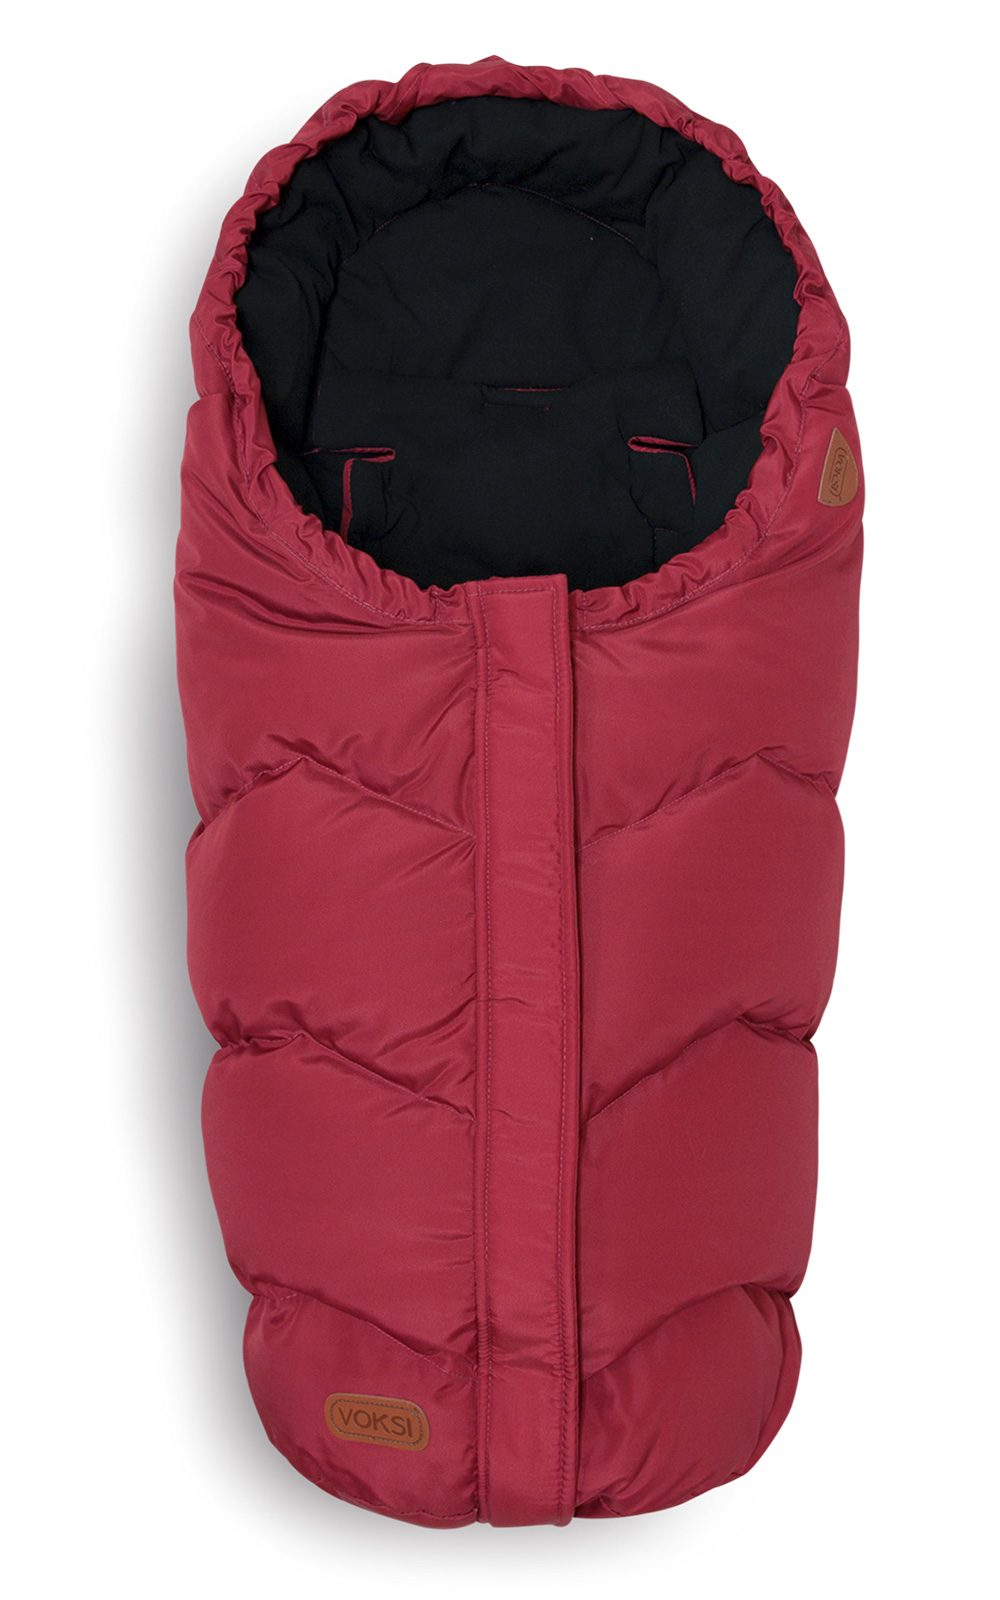 Voksi_Move_sleepingbag_Ruby-Red